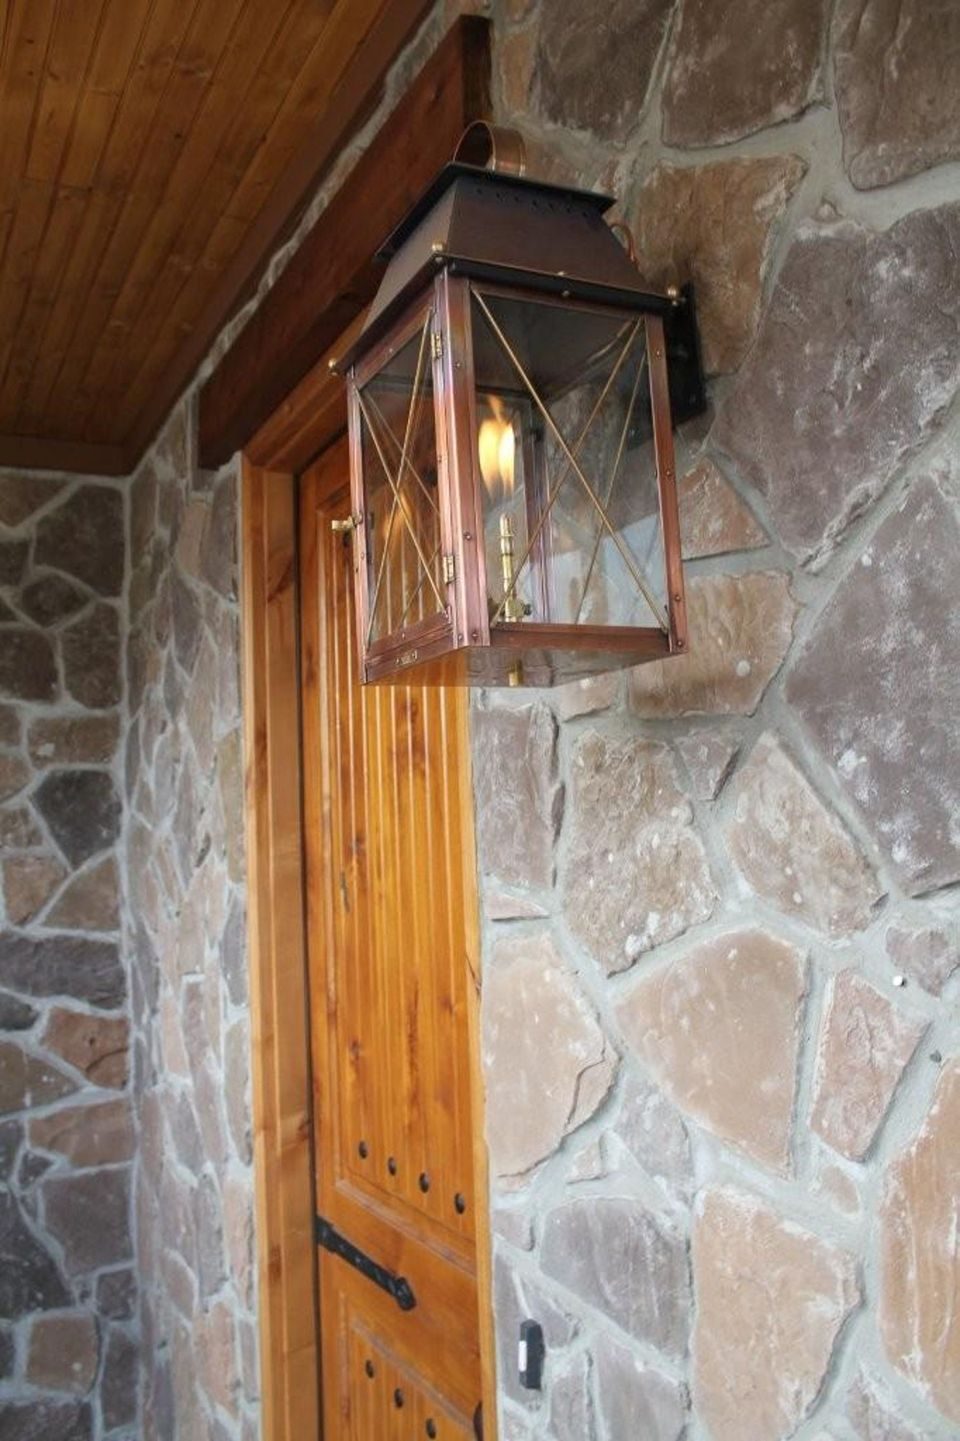 Vintage Hanging Gas Lanterns for Front Door Decorations 1